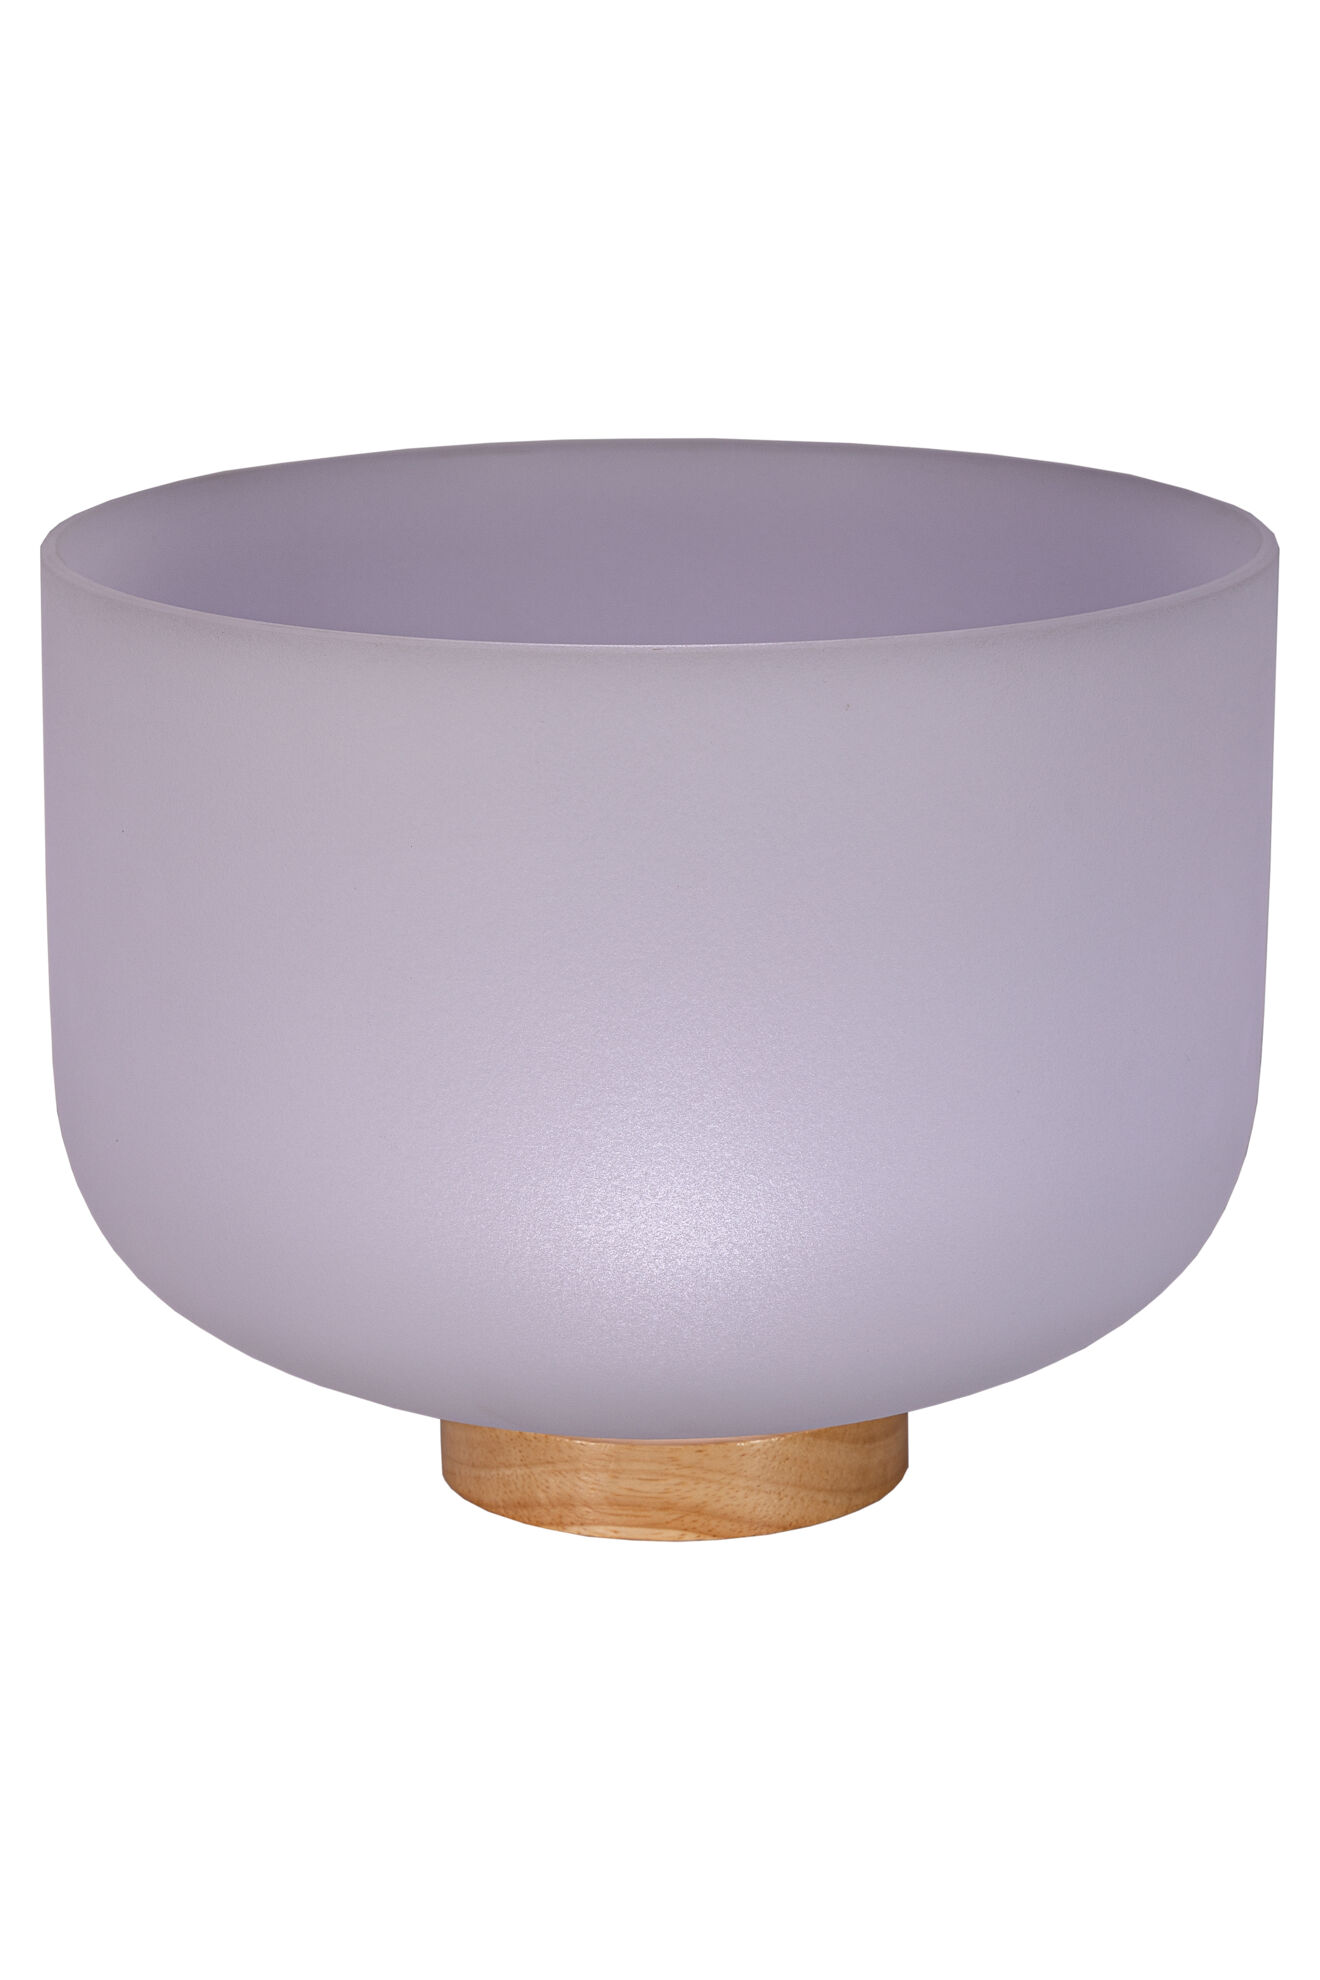 8 Frosted Quartz Singing Bowl Note A Perfect